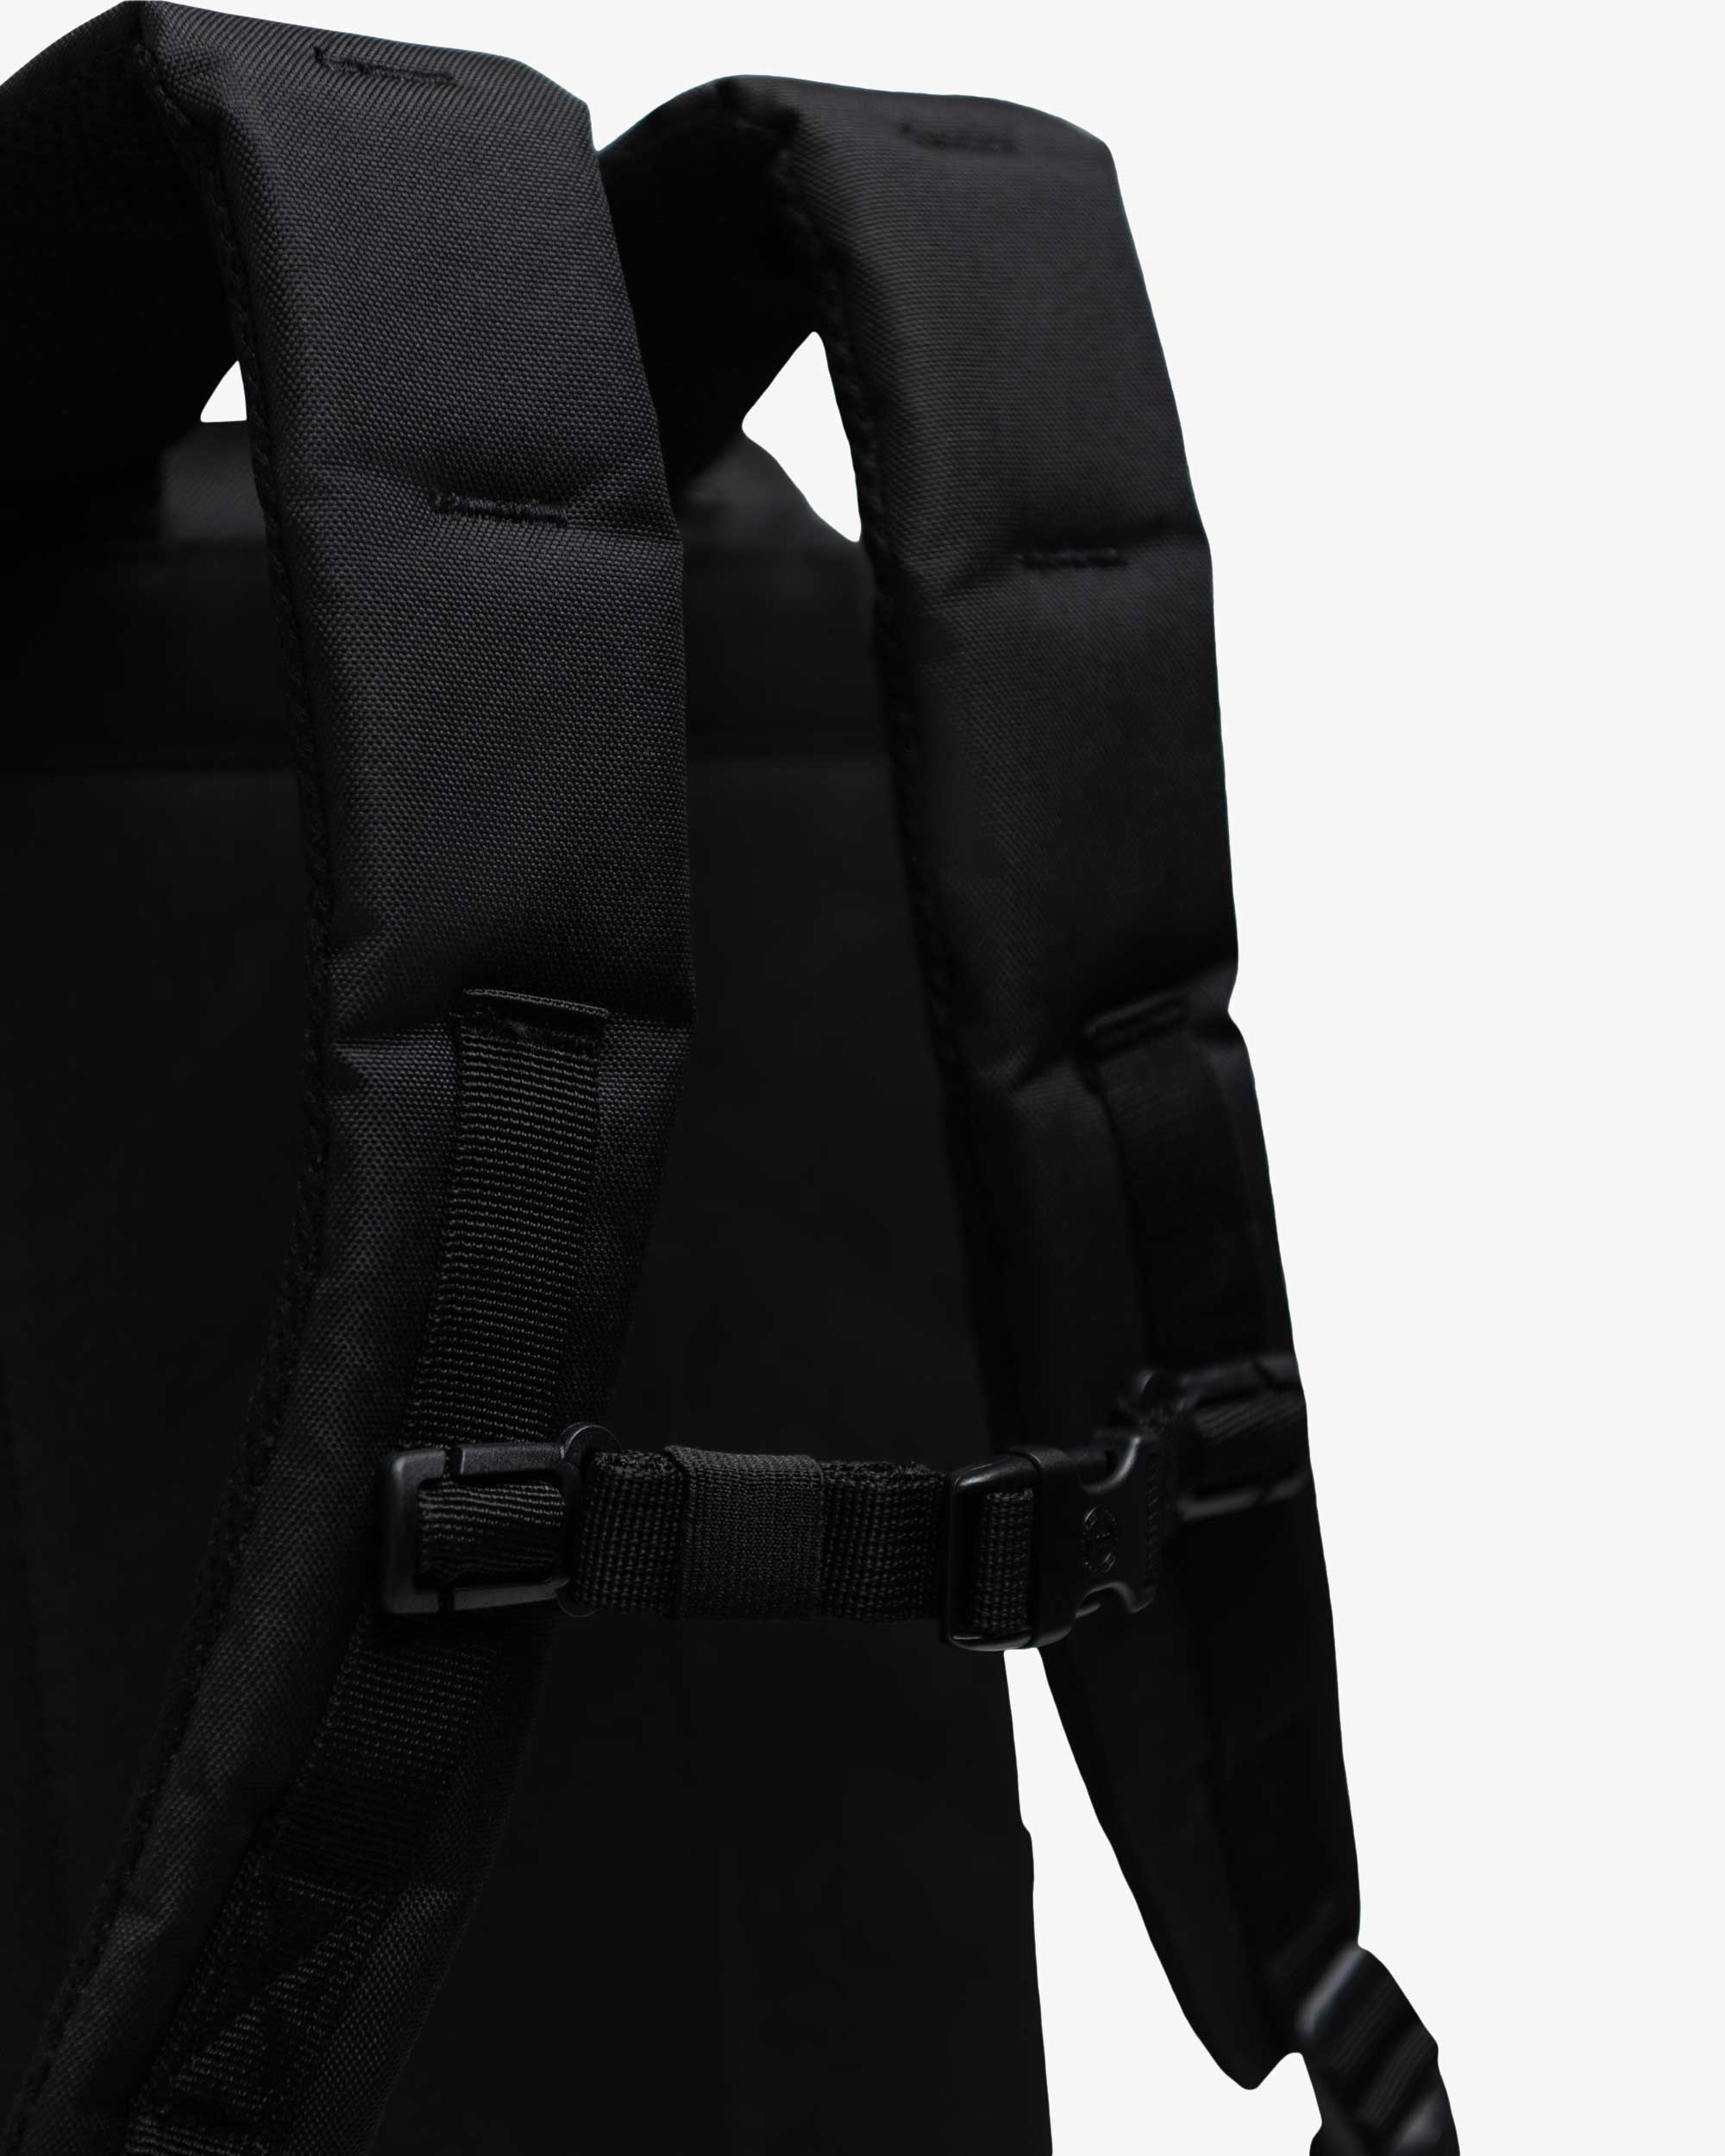 Air mesh shoulder straps for comfortable carrying